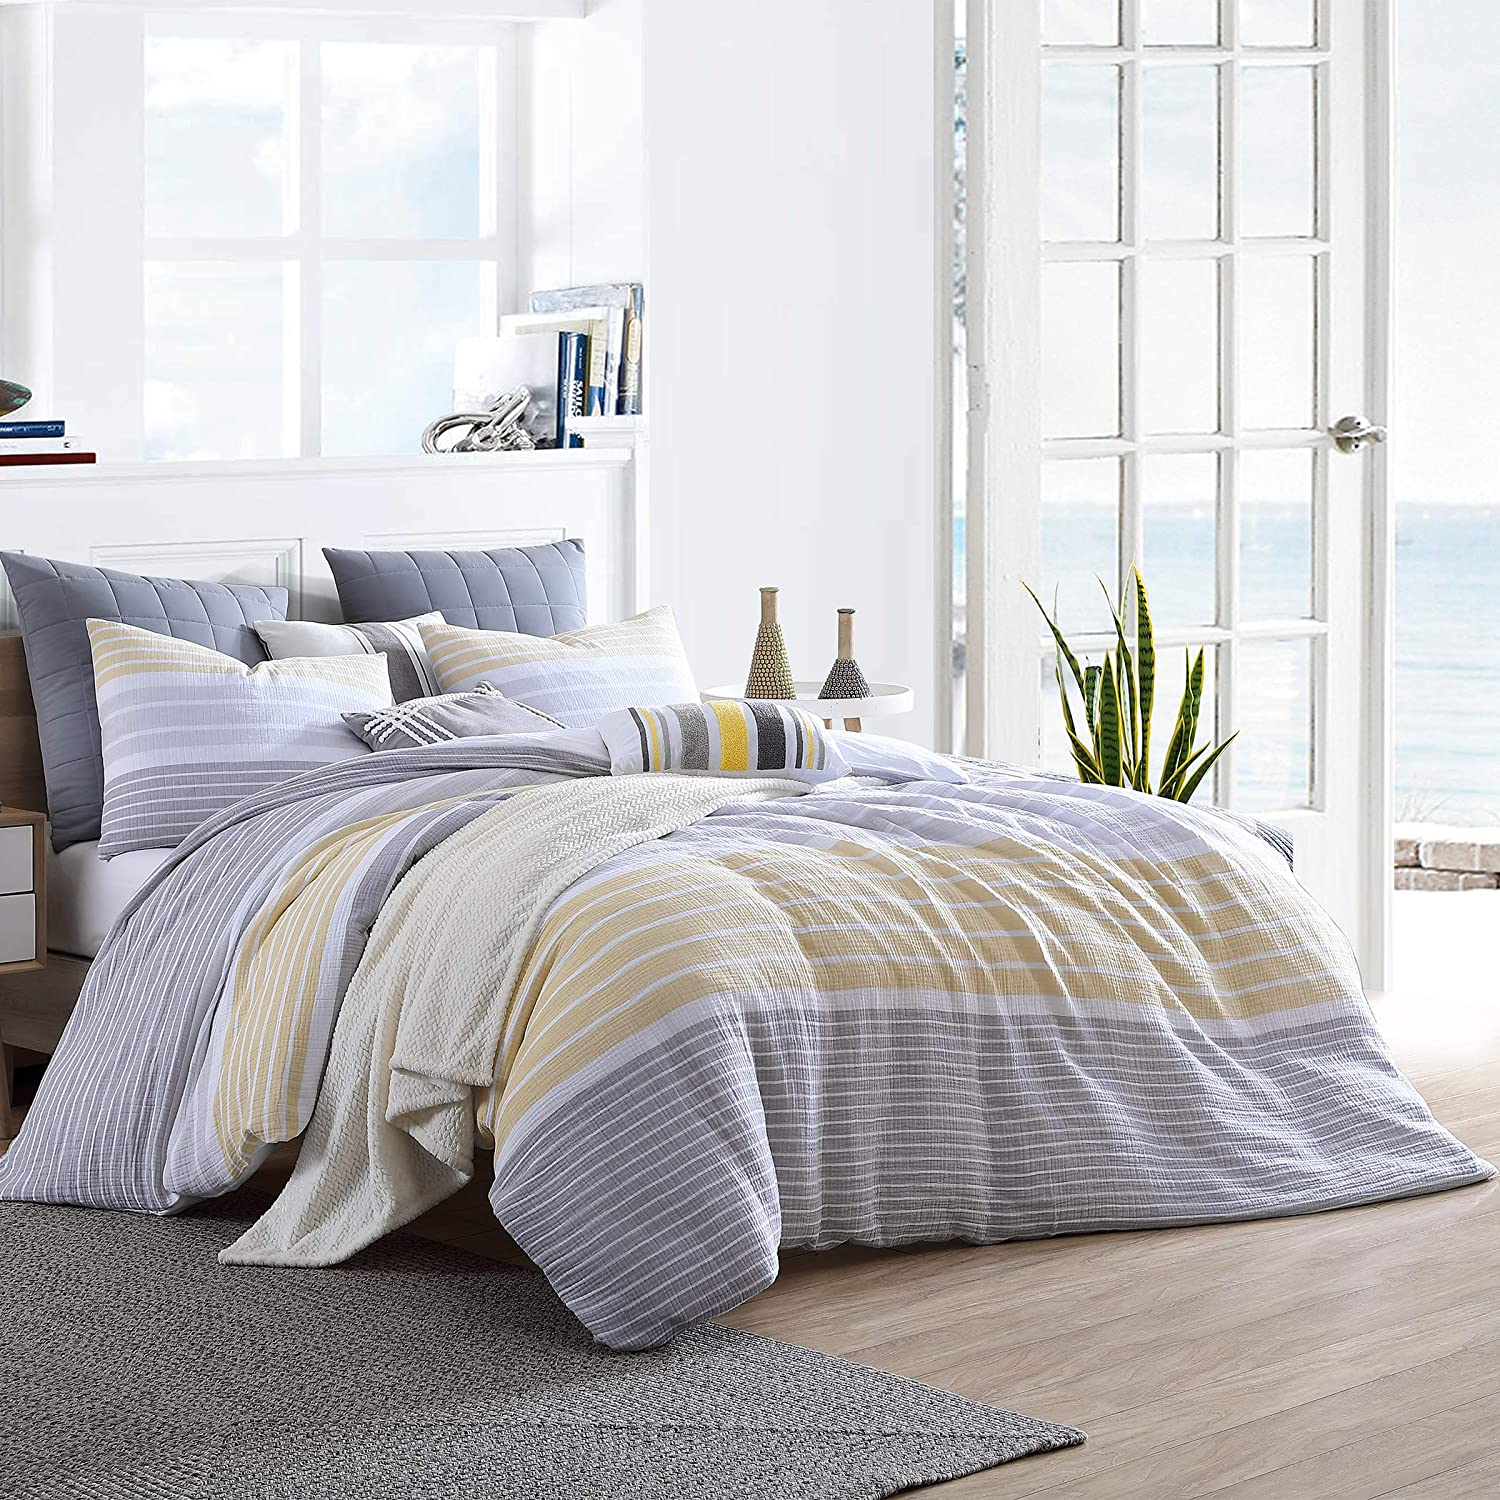 Swift Home Cordelia Prewashed Yarn-Dyed 100% Cotton Gauze Stripe Duvet Cover Set, Oeko-Tex Certified, Ultra Soft and Breathable, Button Closure, All Season - Yellow, Twin/Twin XL (68